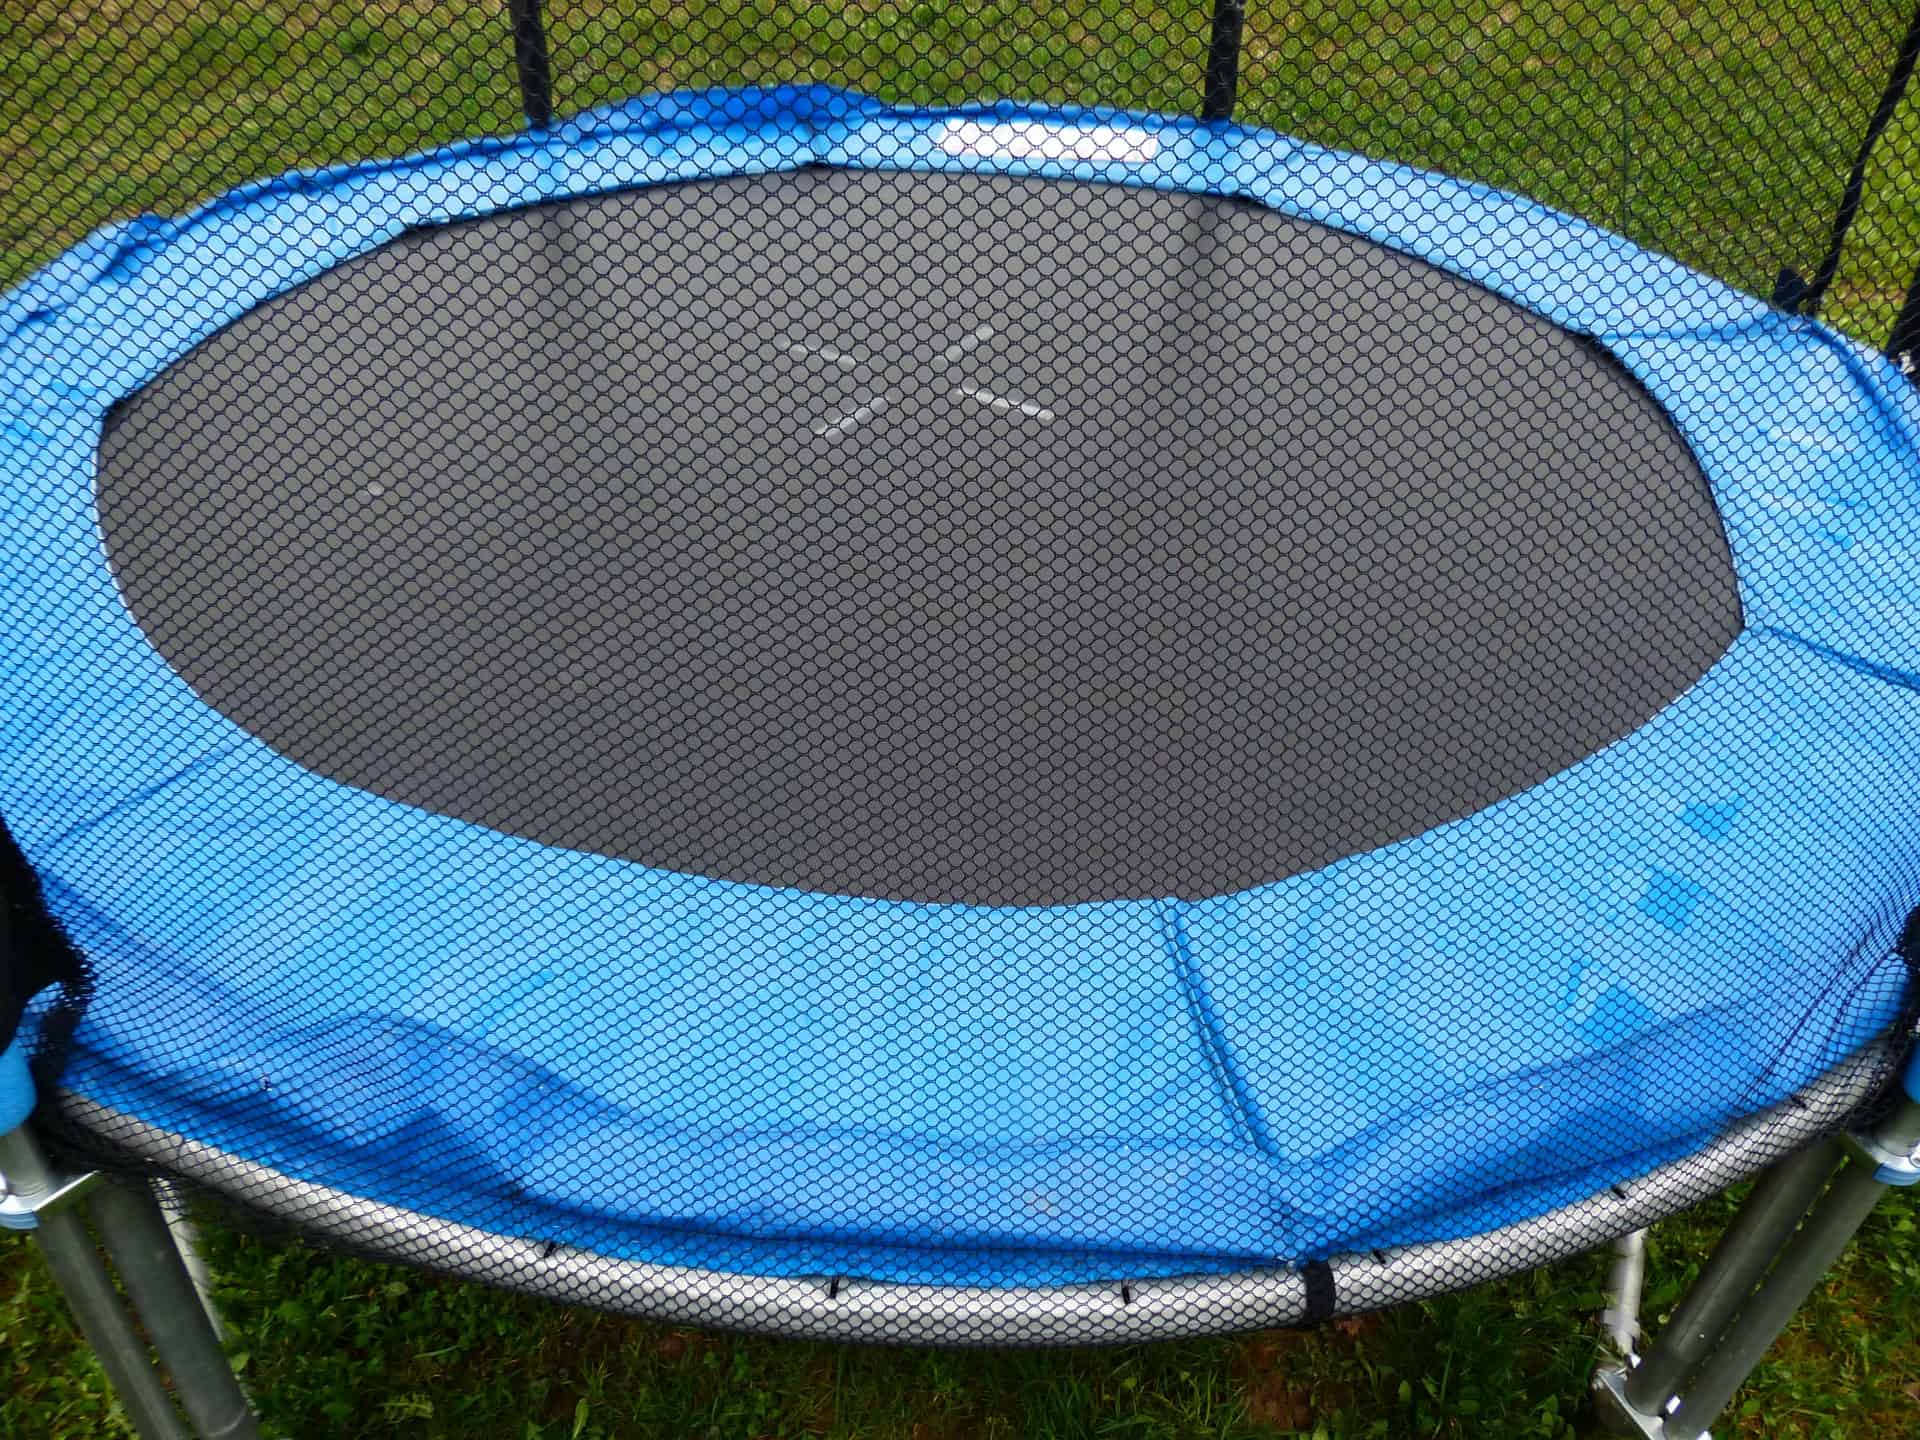 trampolin test 2019 die besten trampoline im vergleich. Black Bedroom Furniture Sets. Home Design Ideas